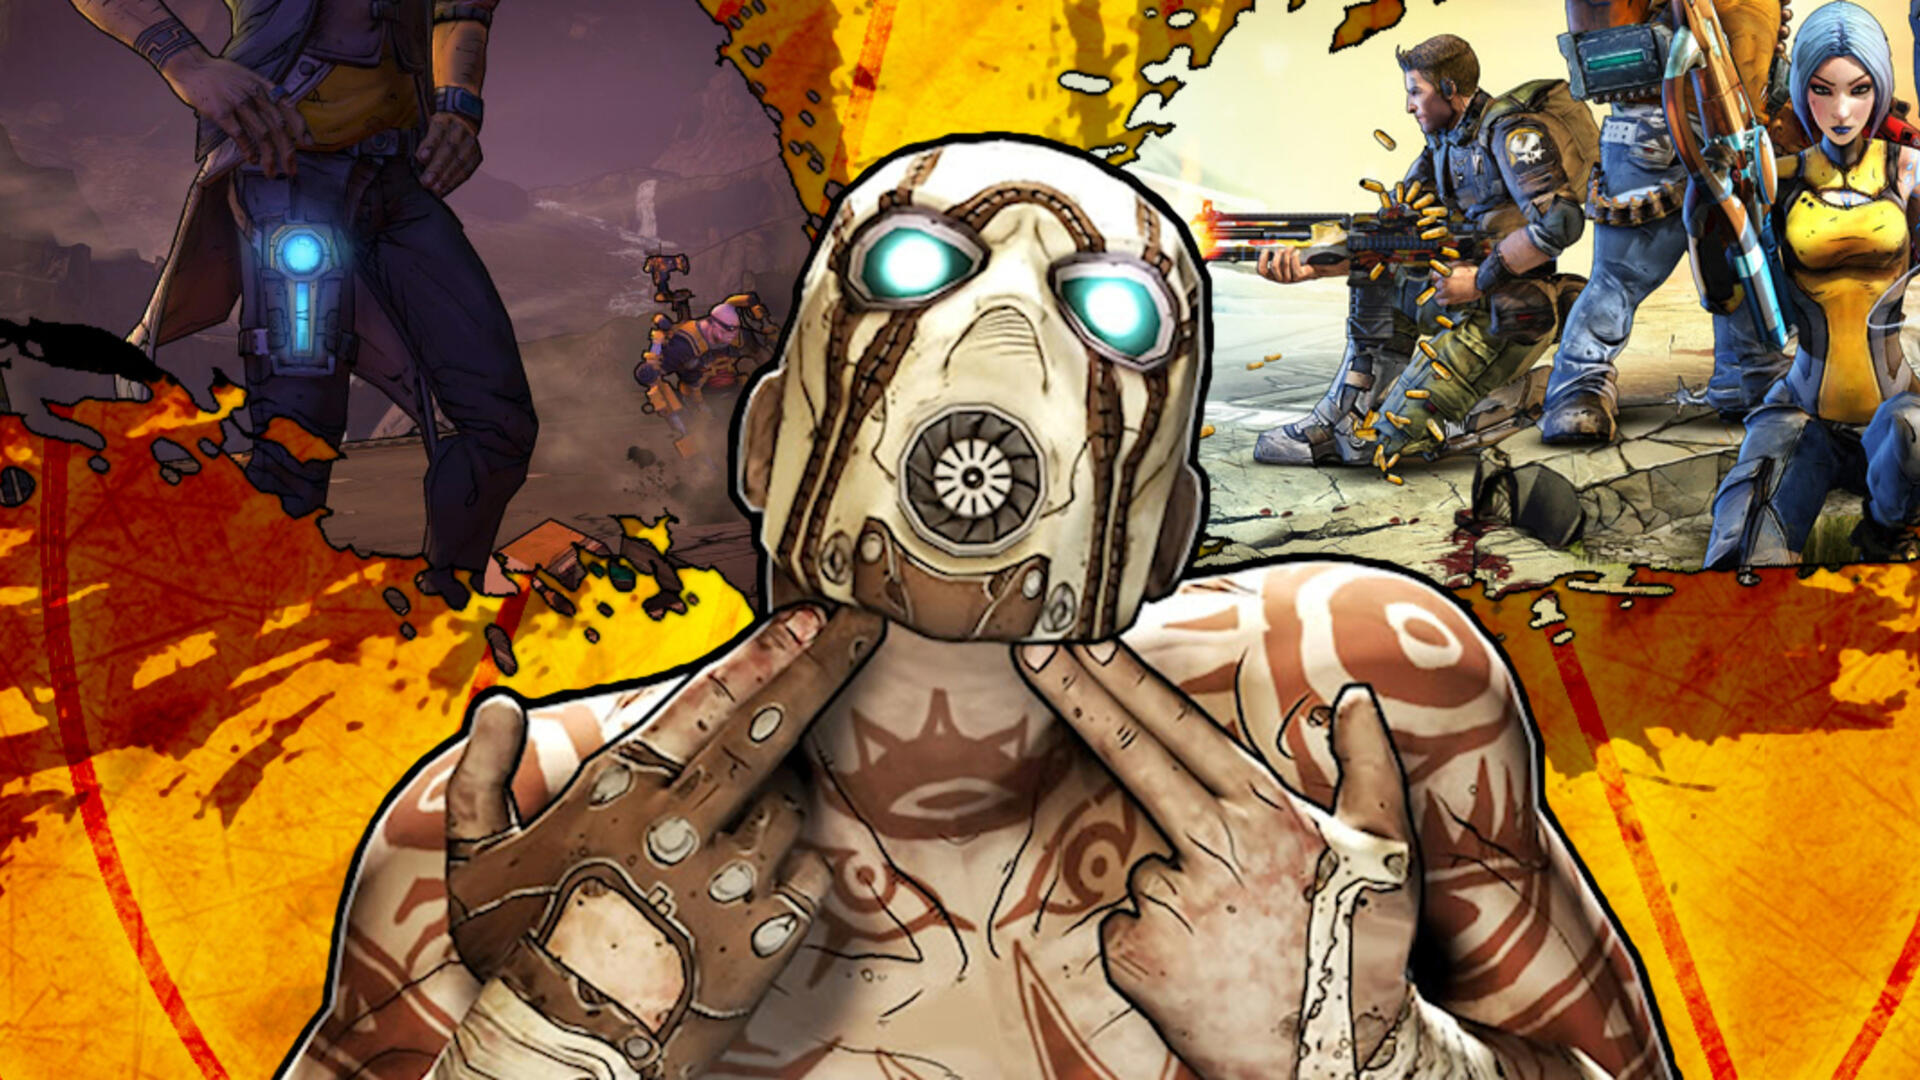 Borderlands: Game of the Year Edition and 4K Update to Handsome